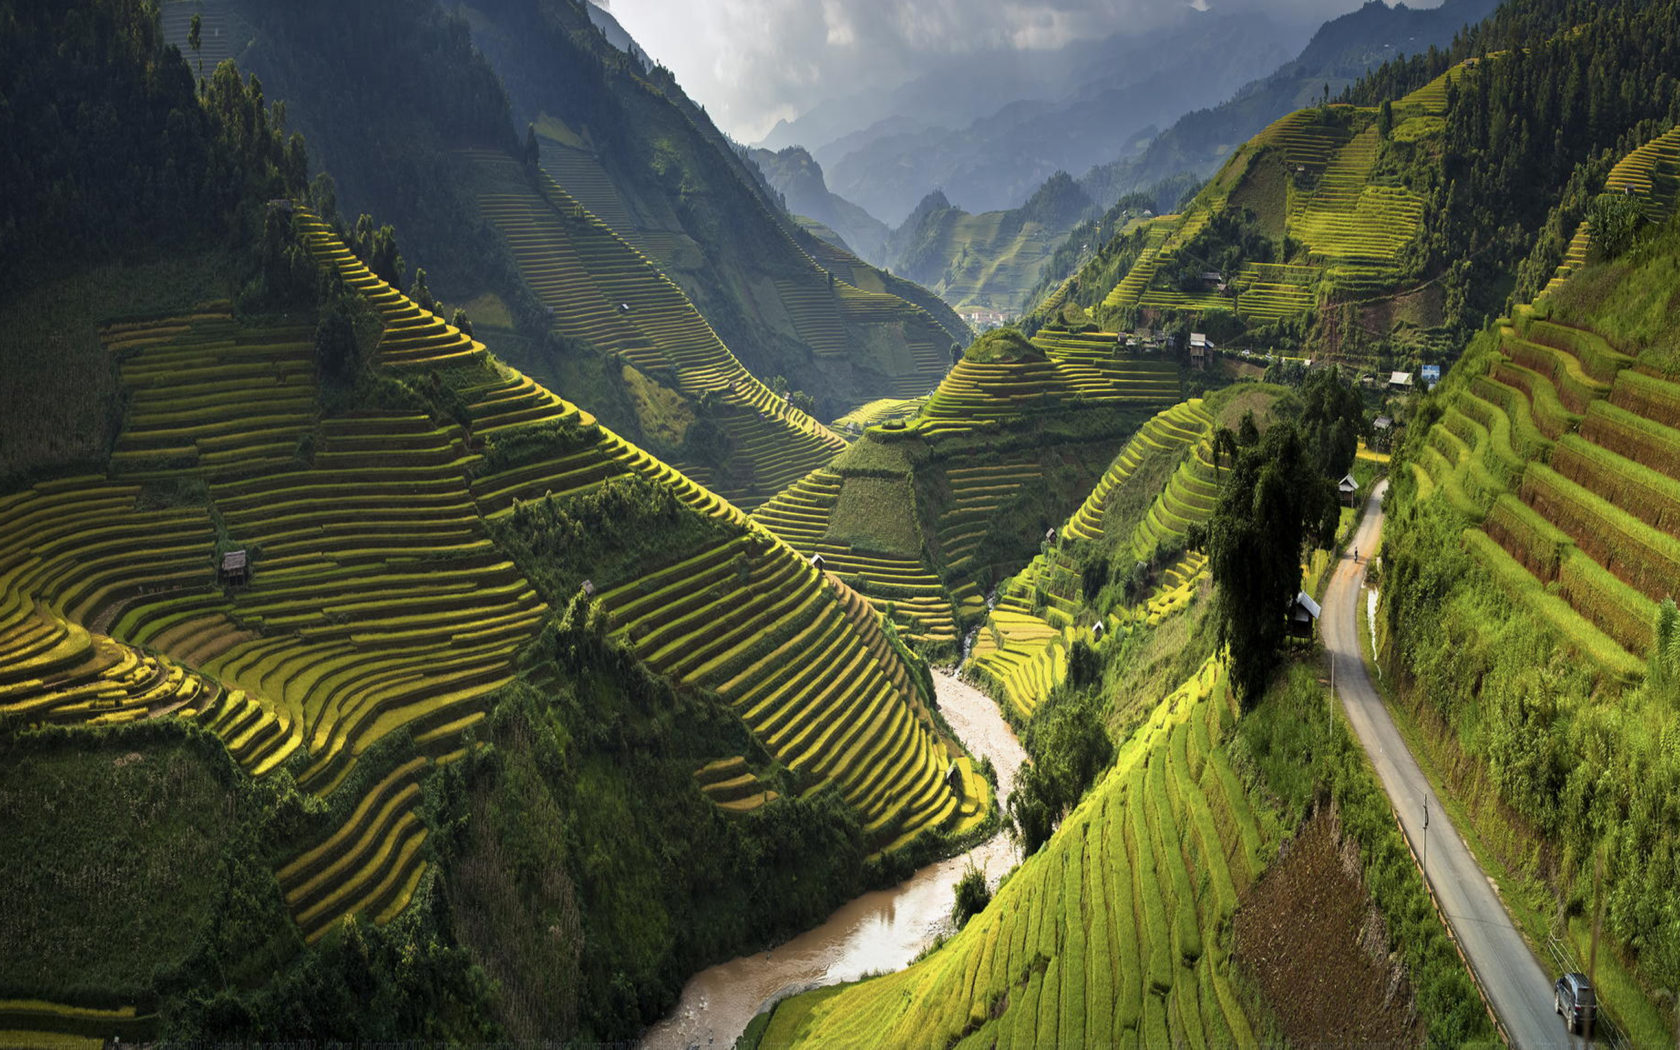 Beautiful Cars Hd Wallpapers Download Landscape Terasasti Fields With Rice Mu Cang Chai District